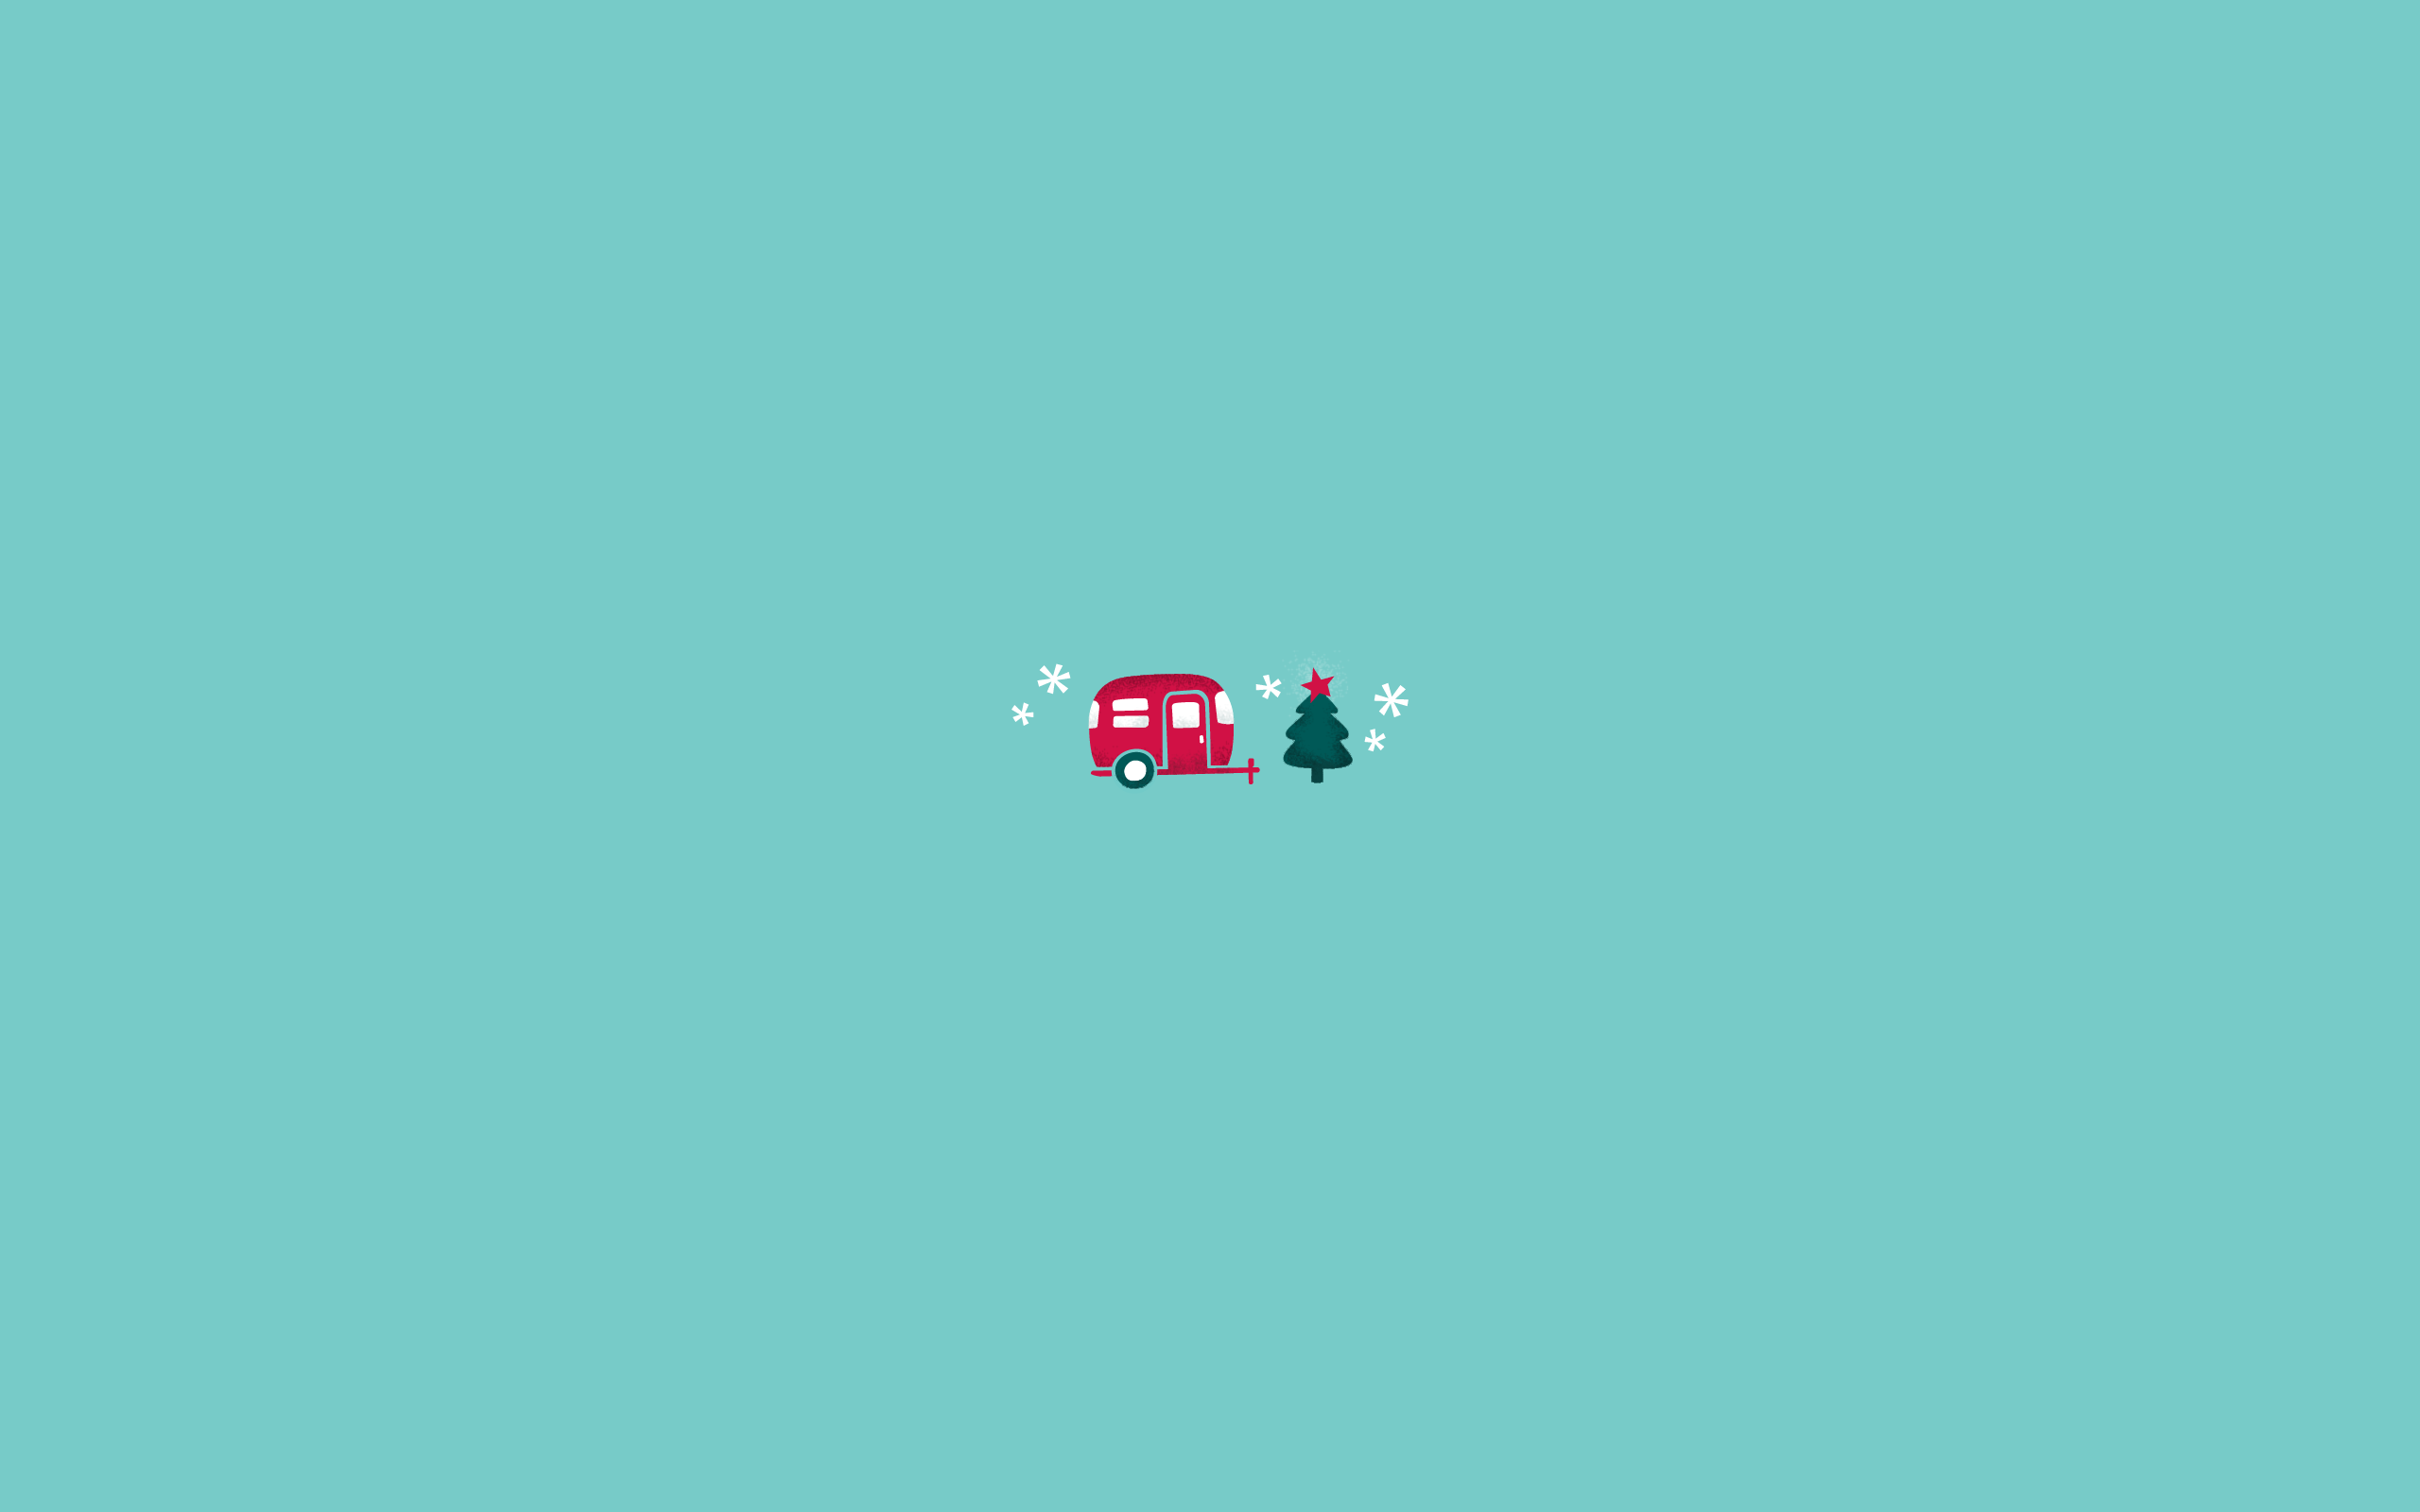 Christmas Minimalist Wallpaper 2560x1600